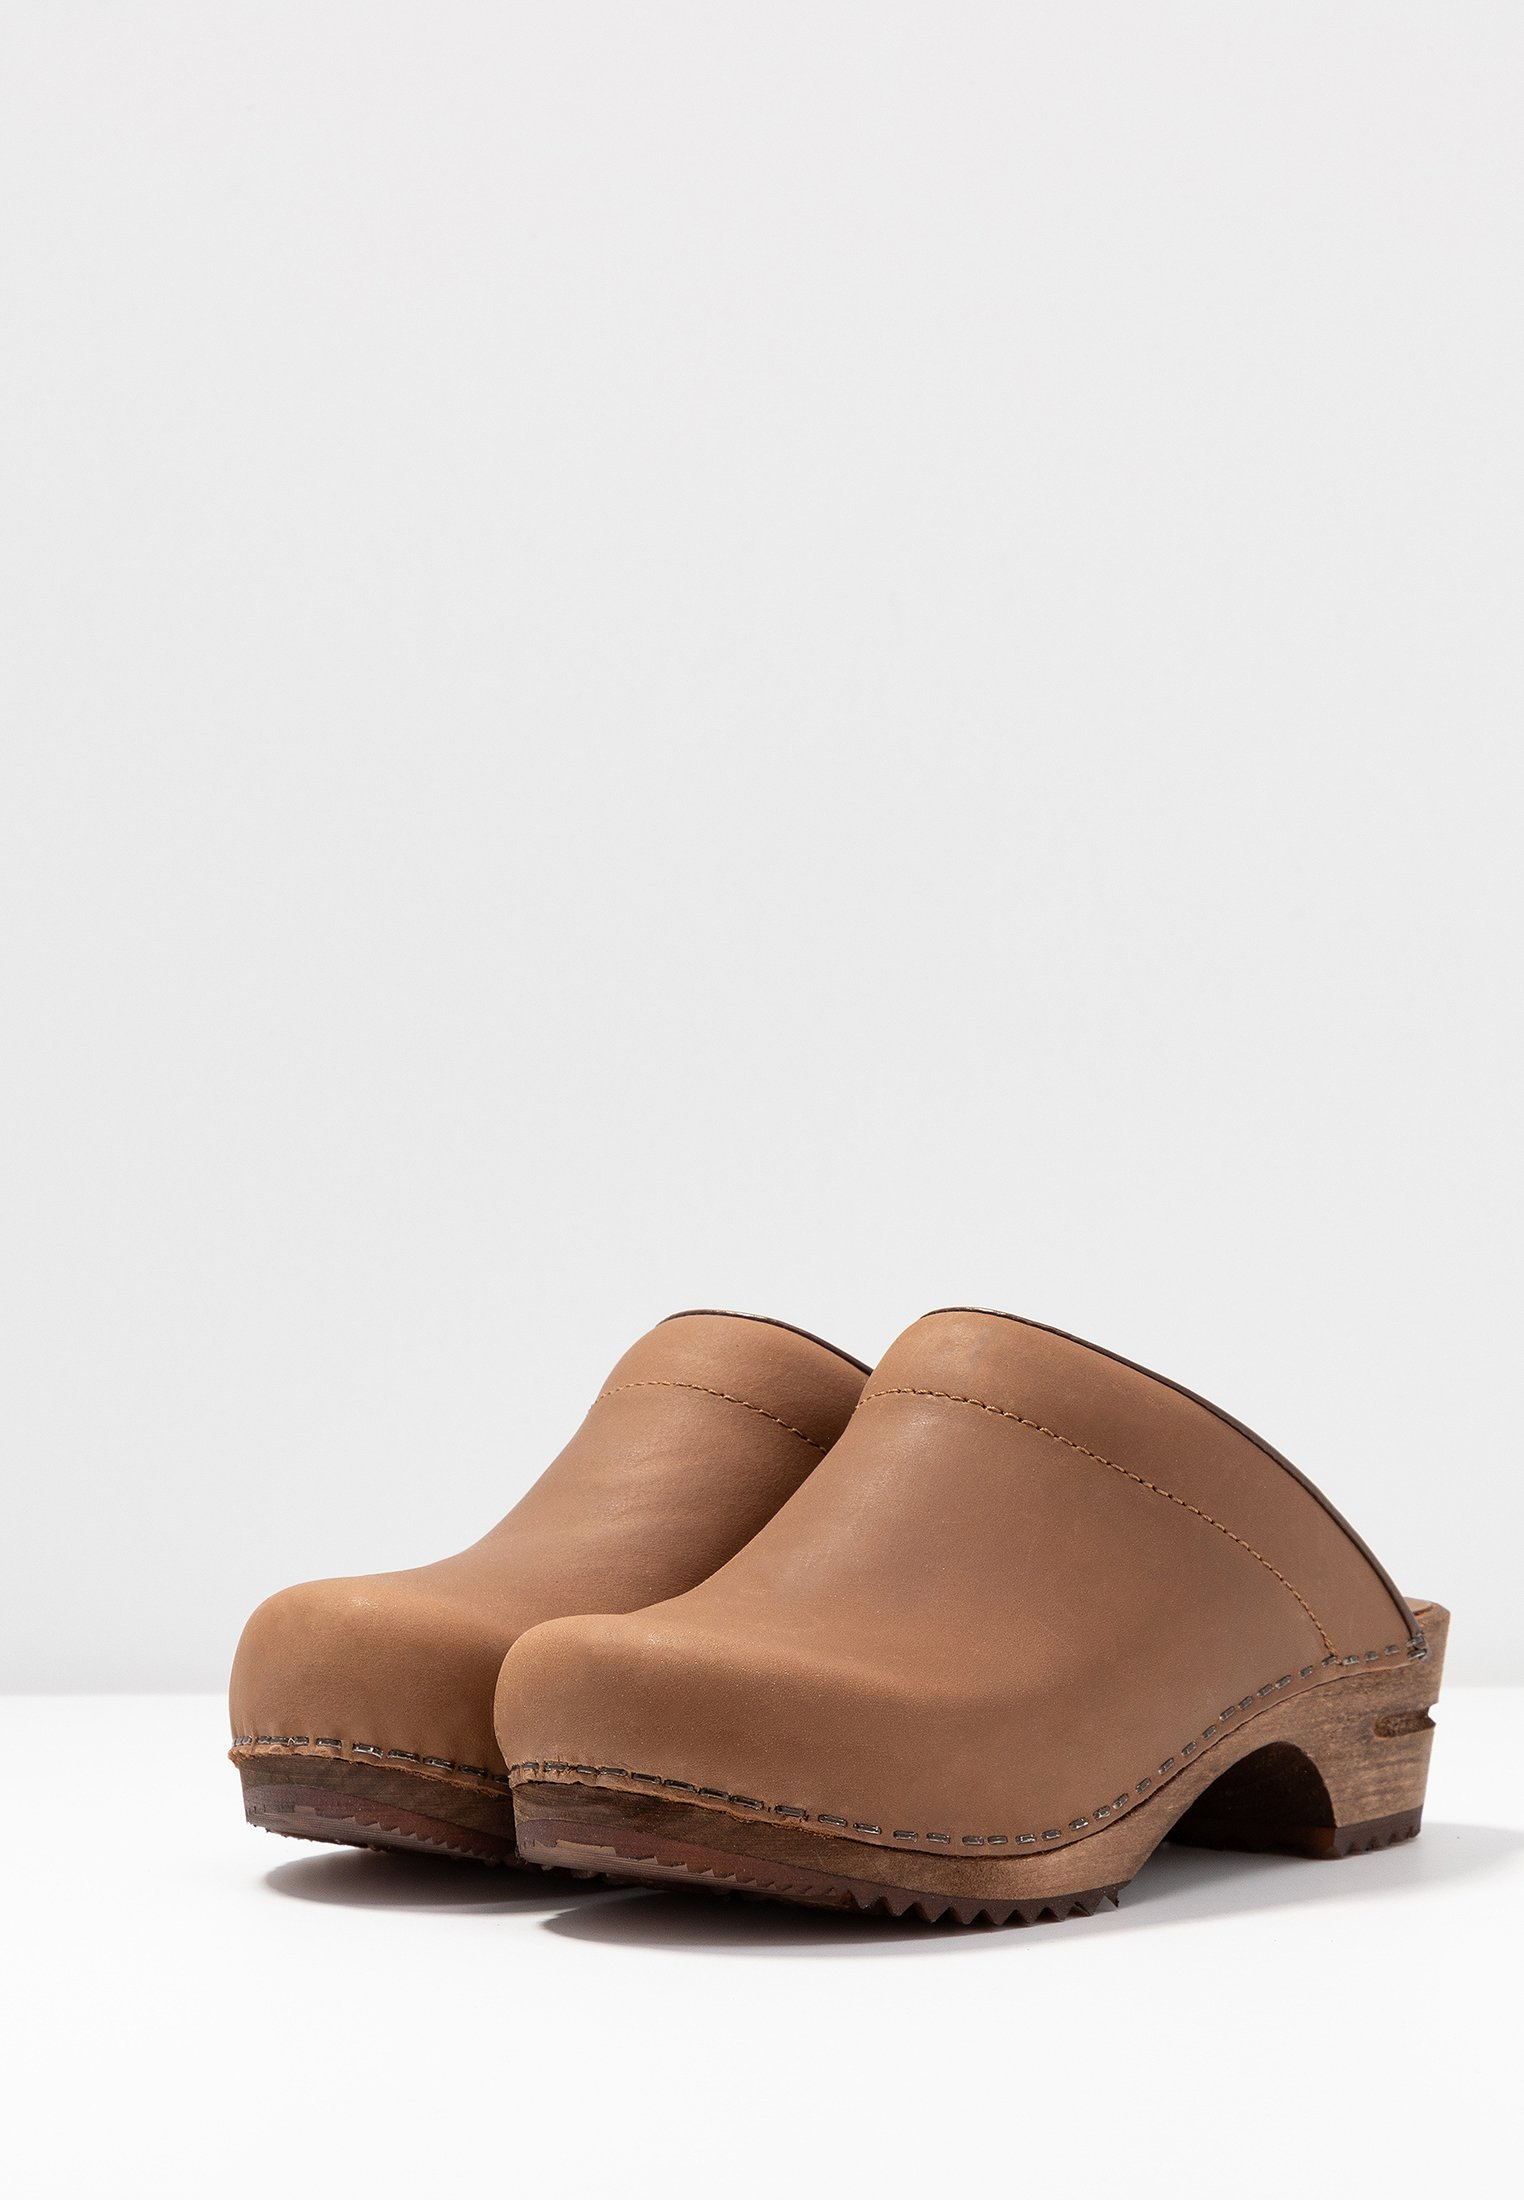 CHRISSY OPEN Clogs cognac